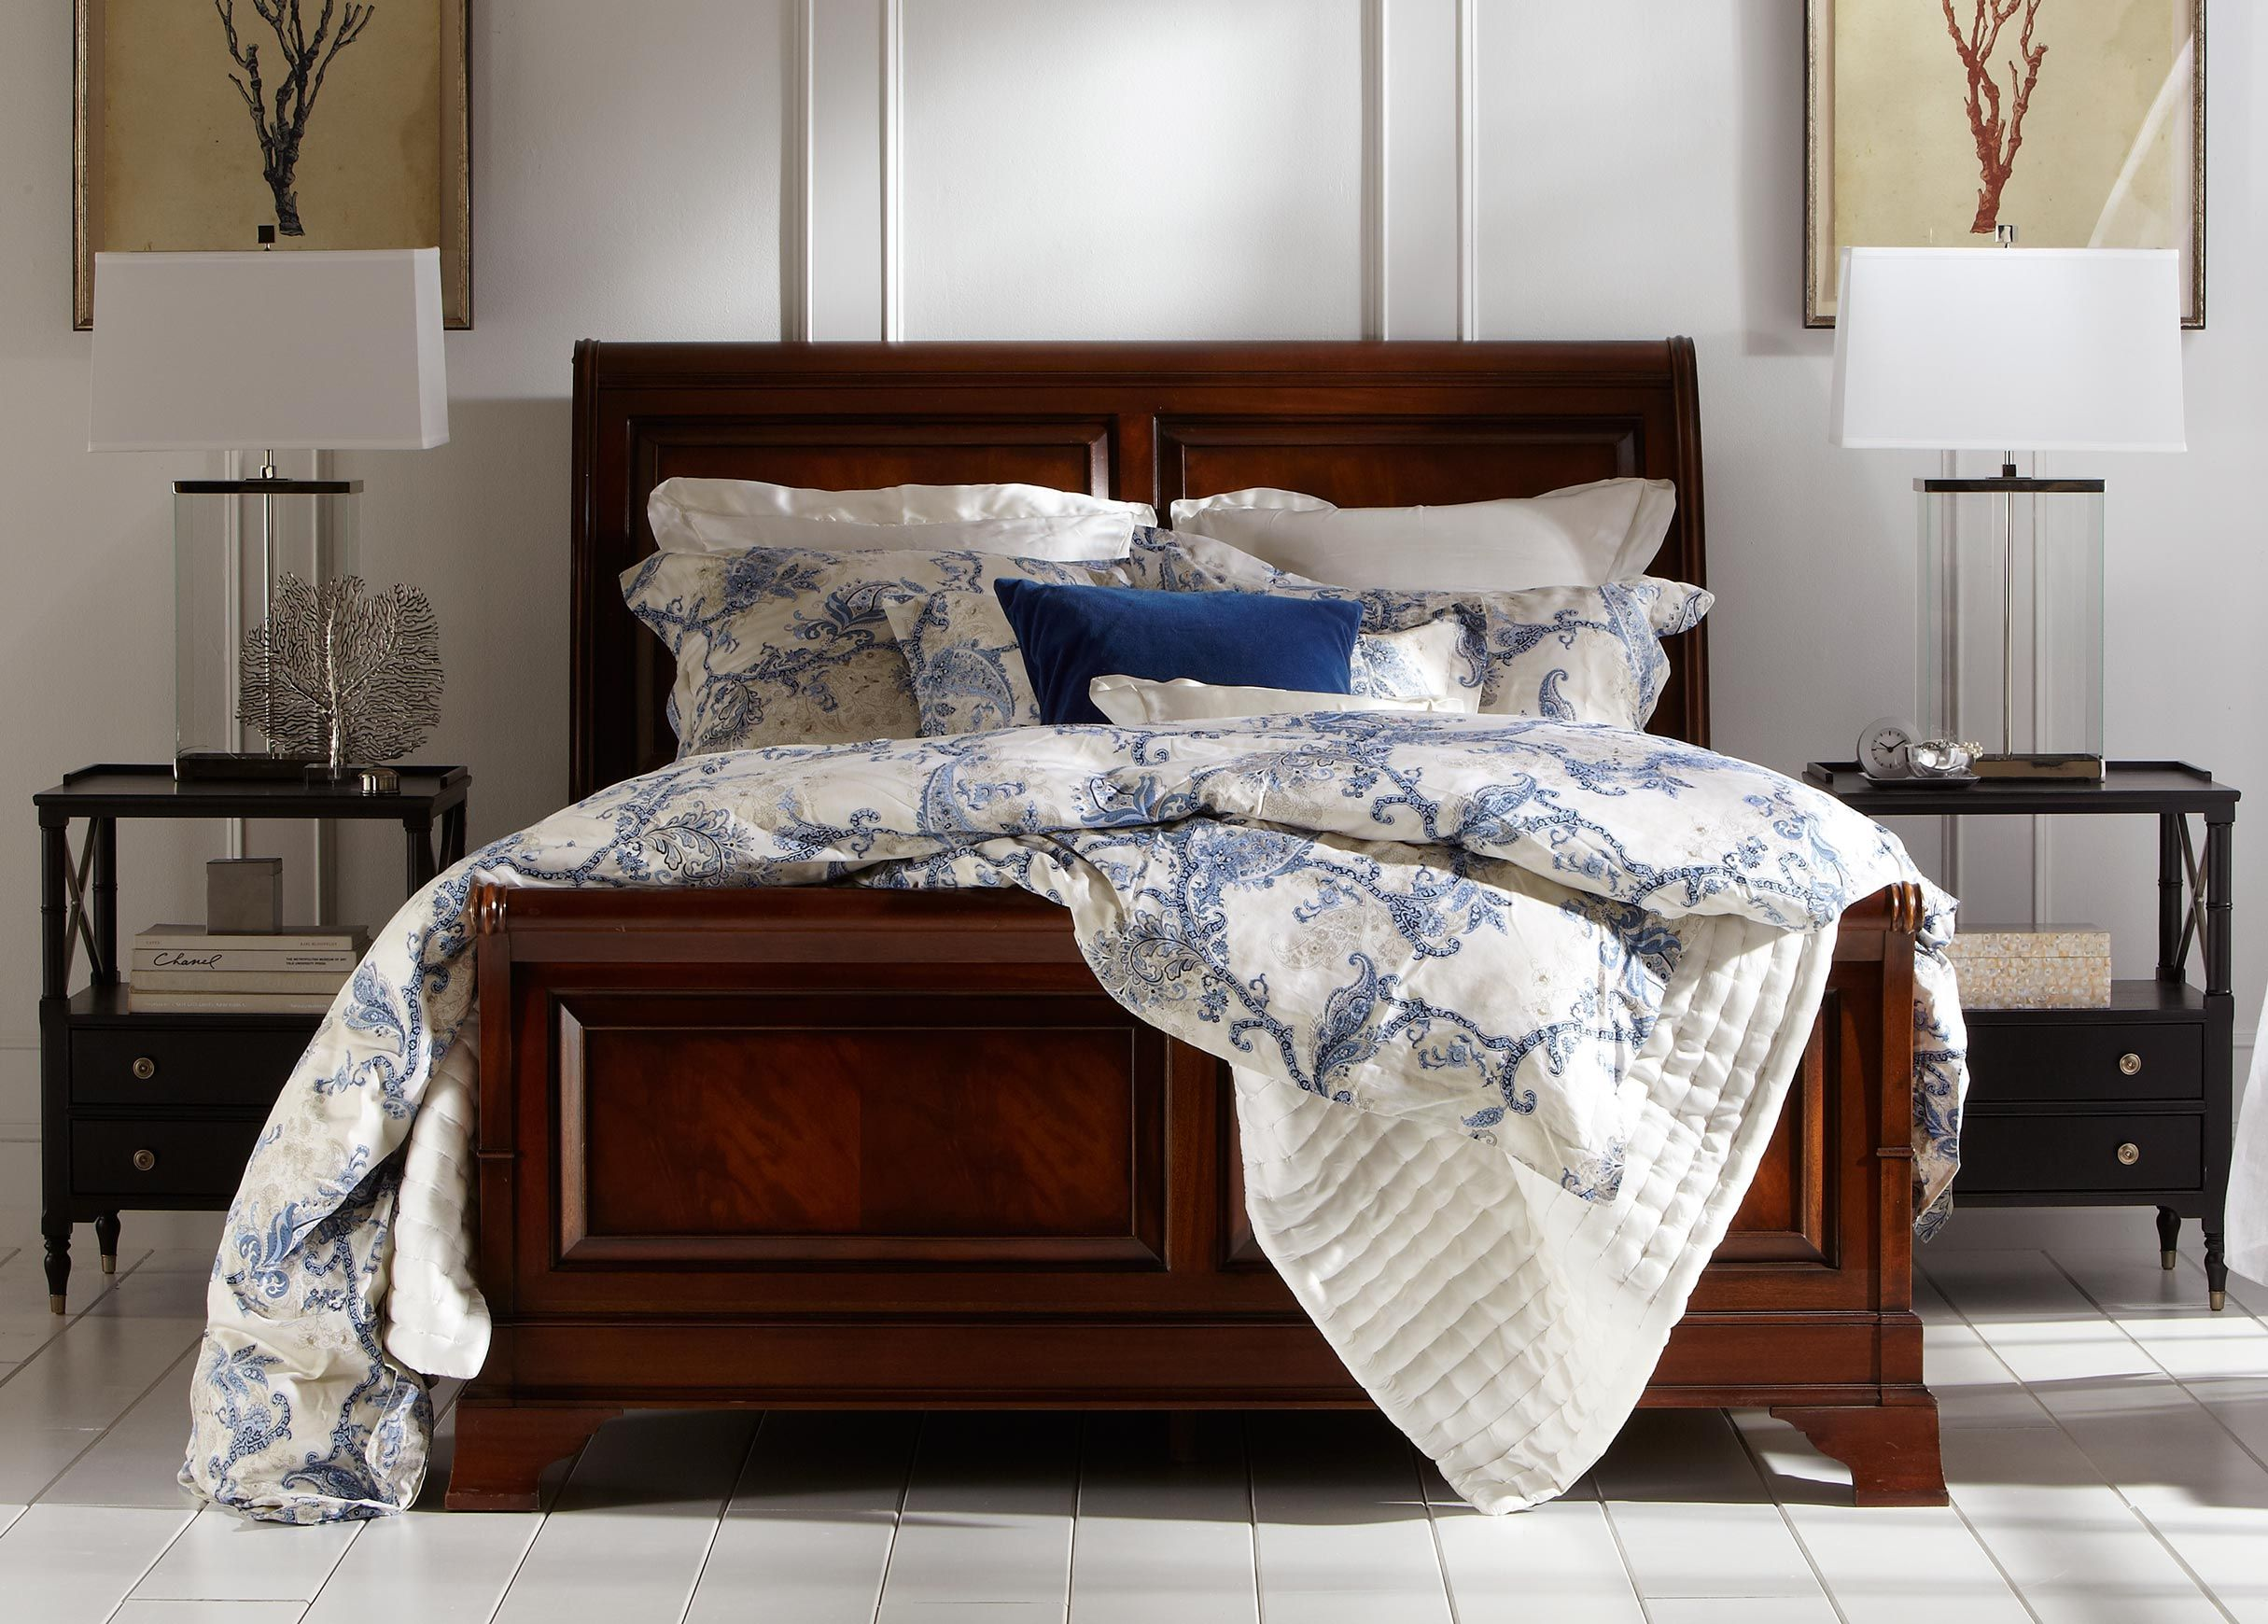 tahari queen duvet home cynthia ideas bed with piece image comforters paisley nicole s set bedroom ah goods rowley studio decoration marshalls pattern genial sheets nifty together cover plus bedding miller max